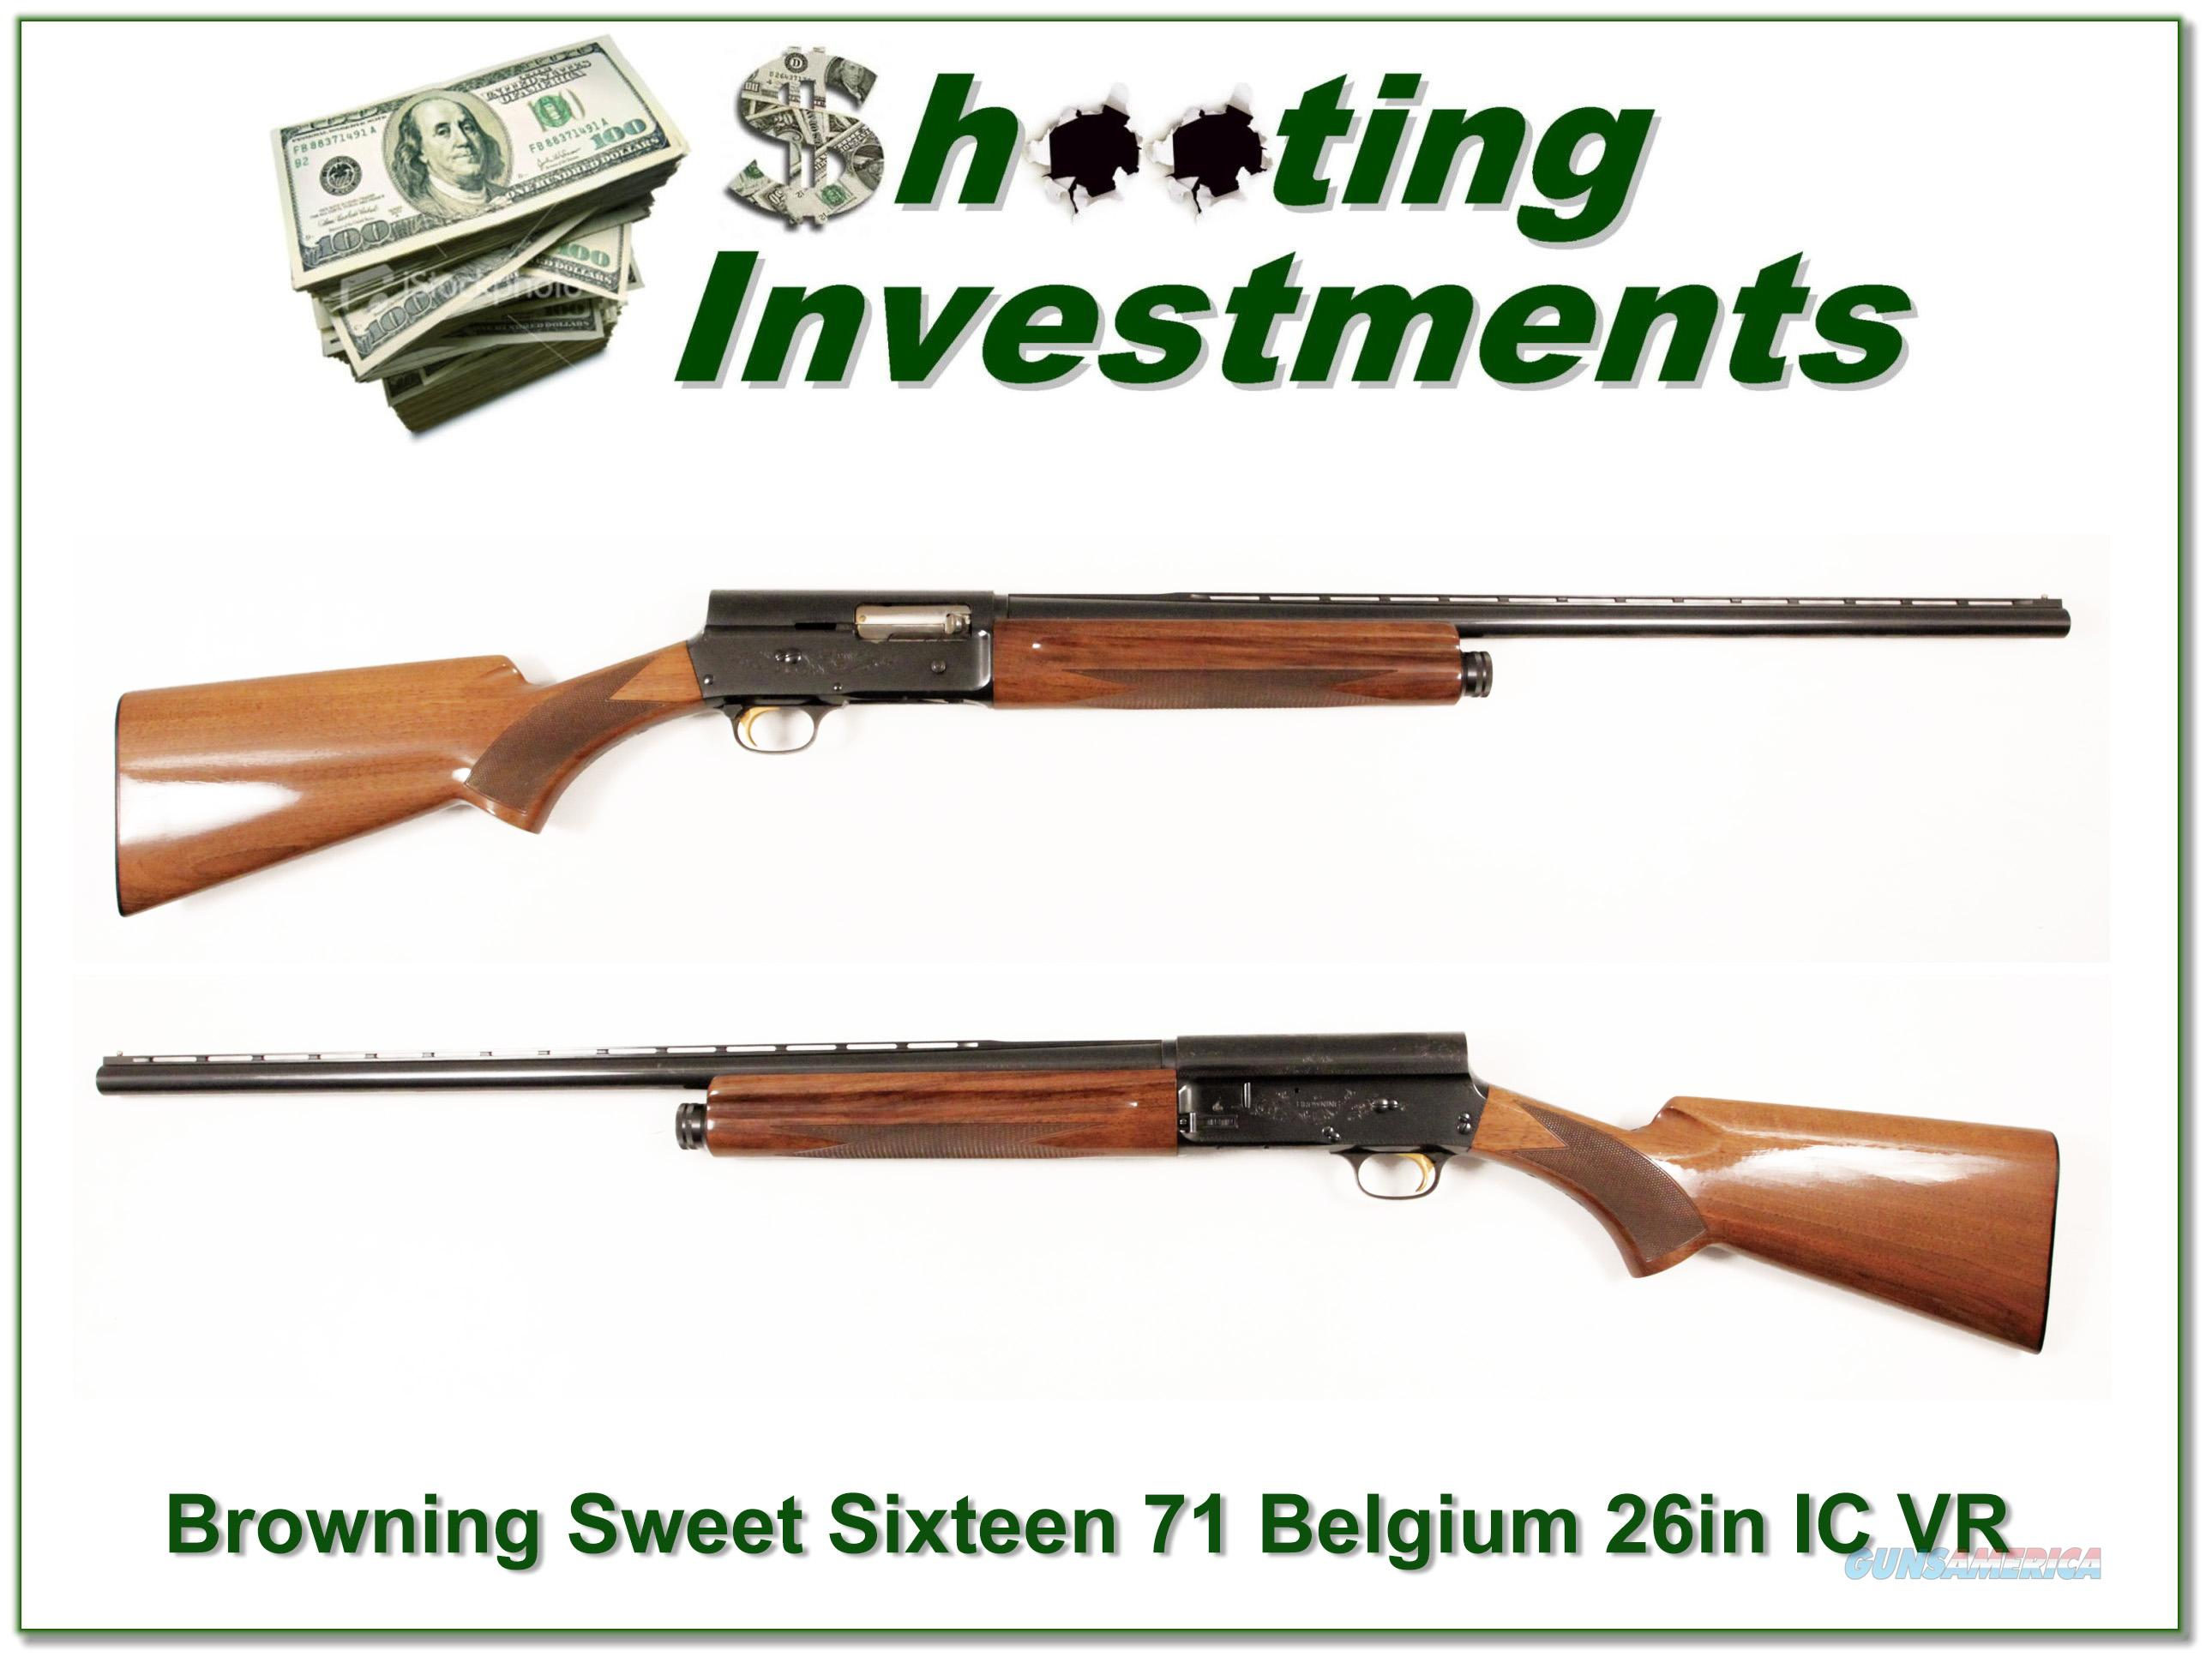 Browning A5 Sweet Sixteen 26in IC VR Exc Cond!  Guns > Shotguns > Browning Shotguns > Autoloaders > Hunting